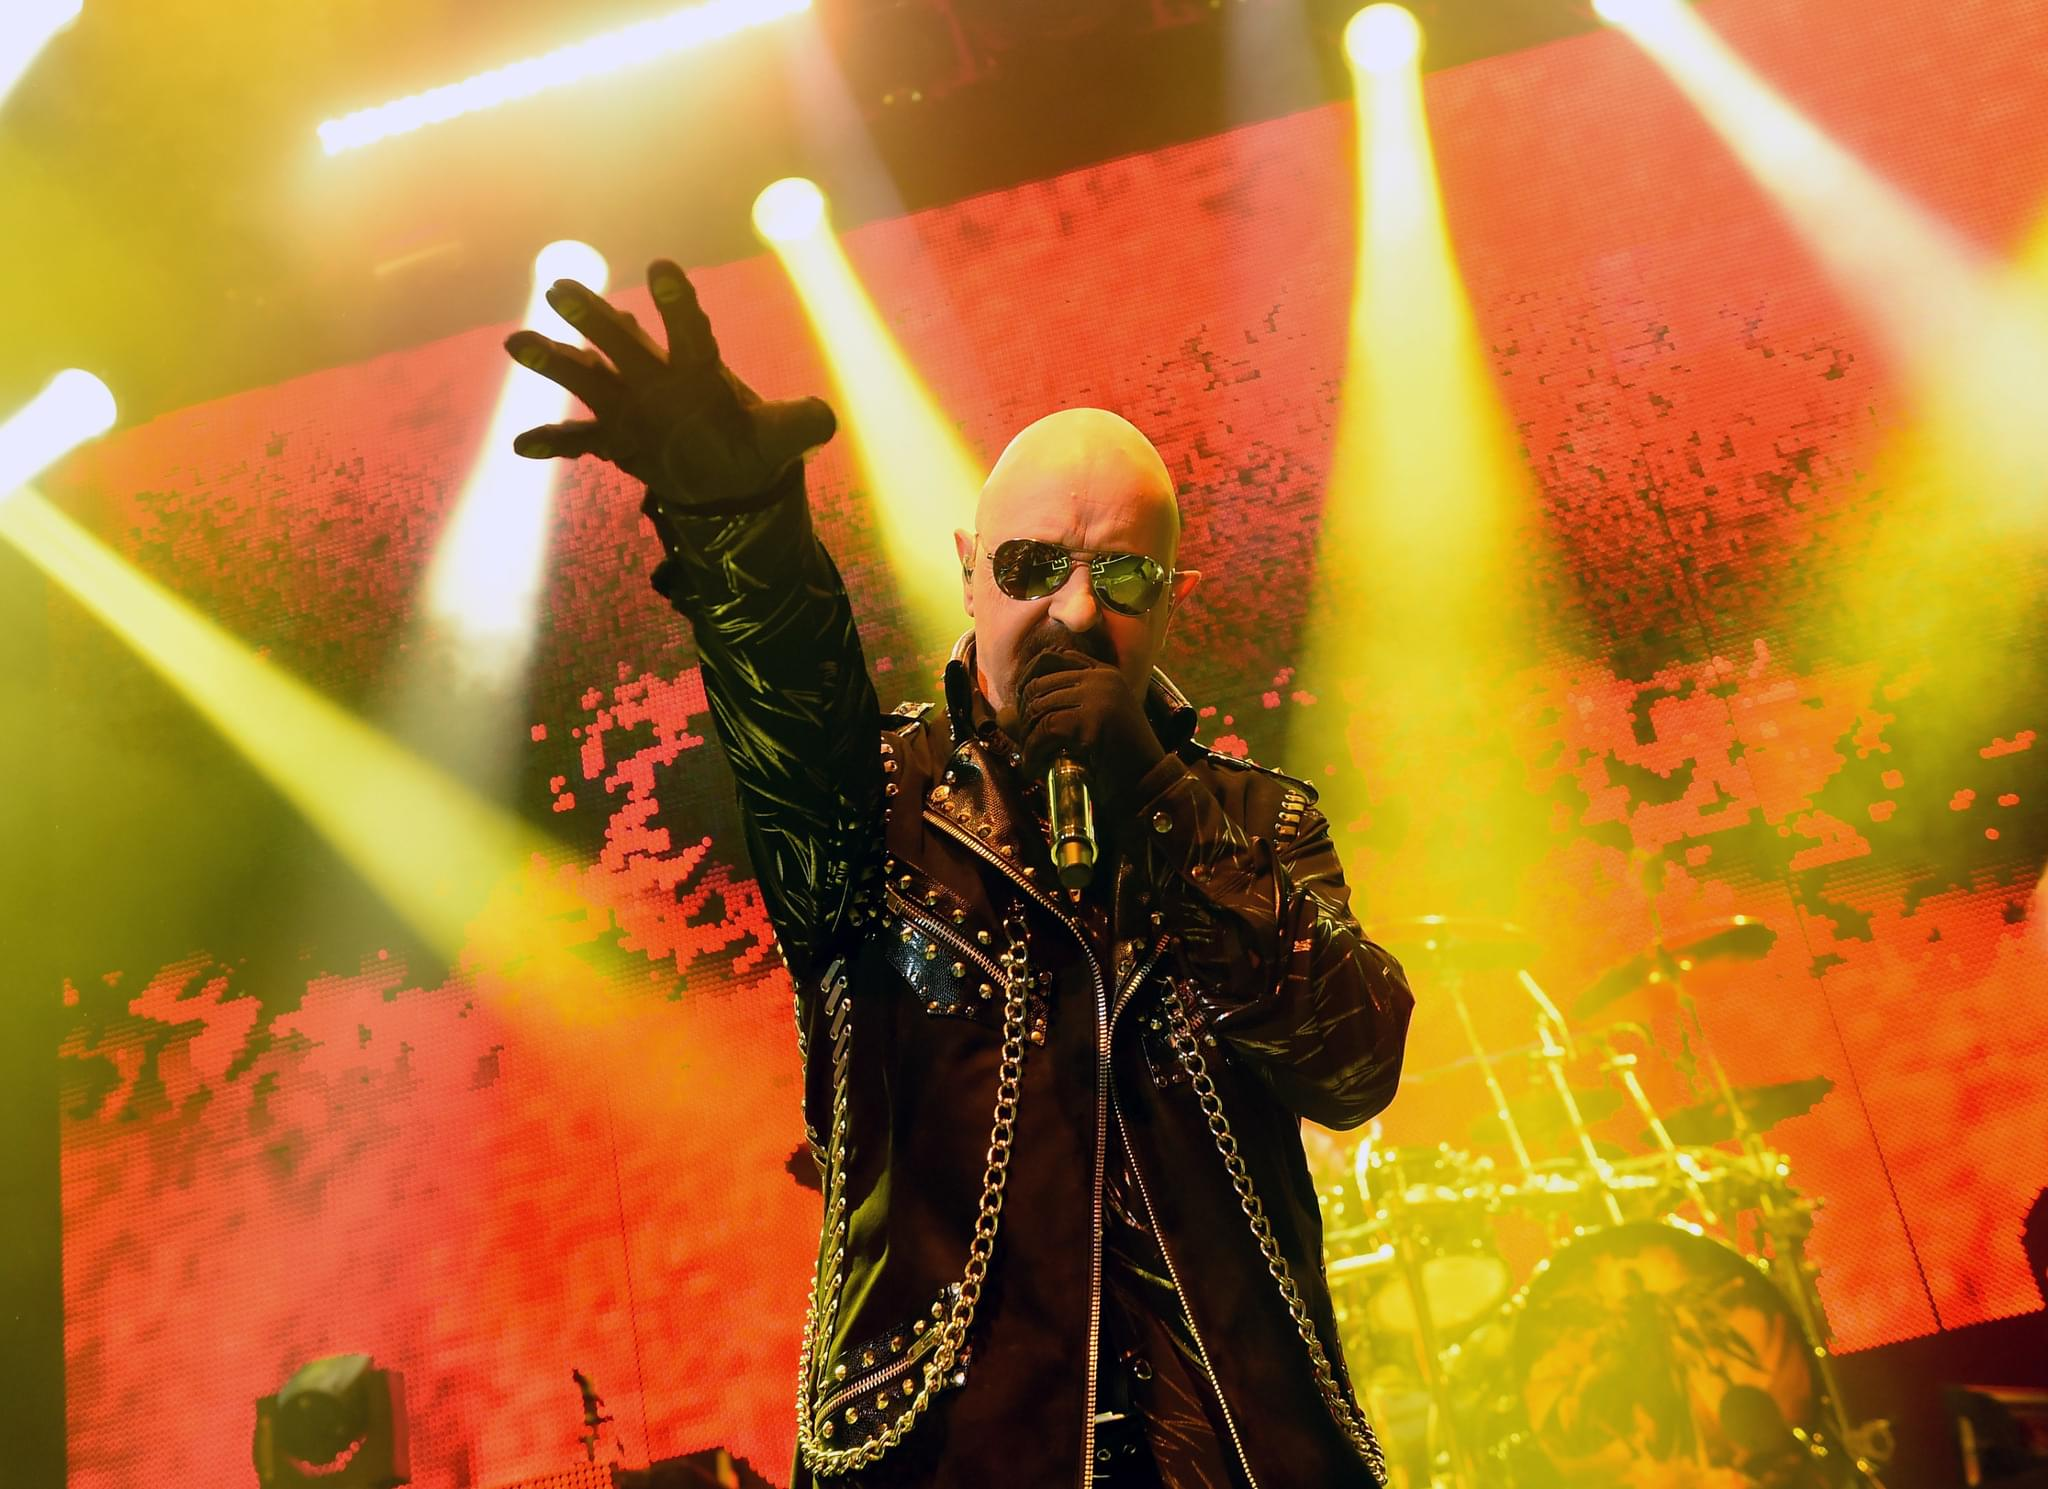 INTERVIEW: ROB HALFORD – JUDAS PRIEST